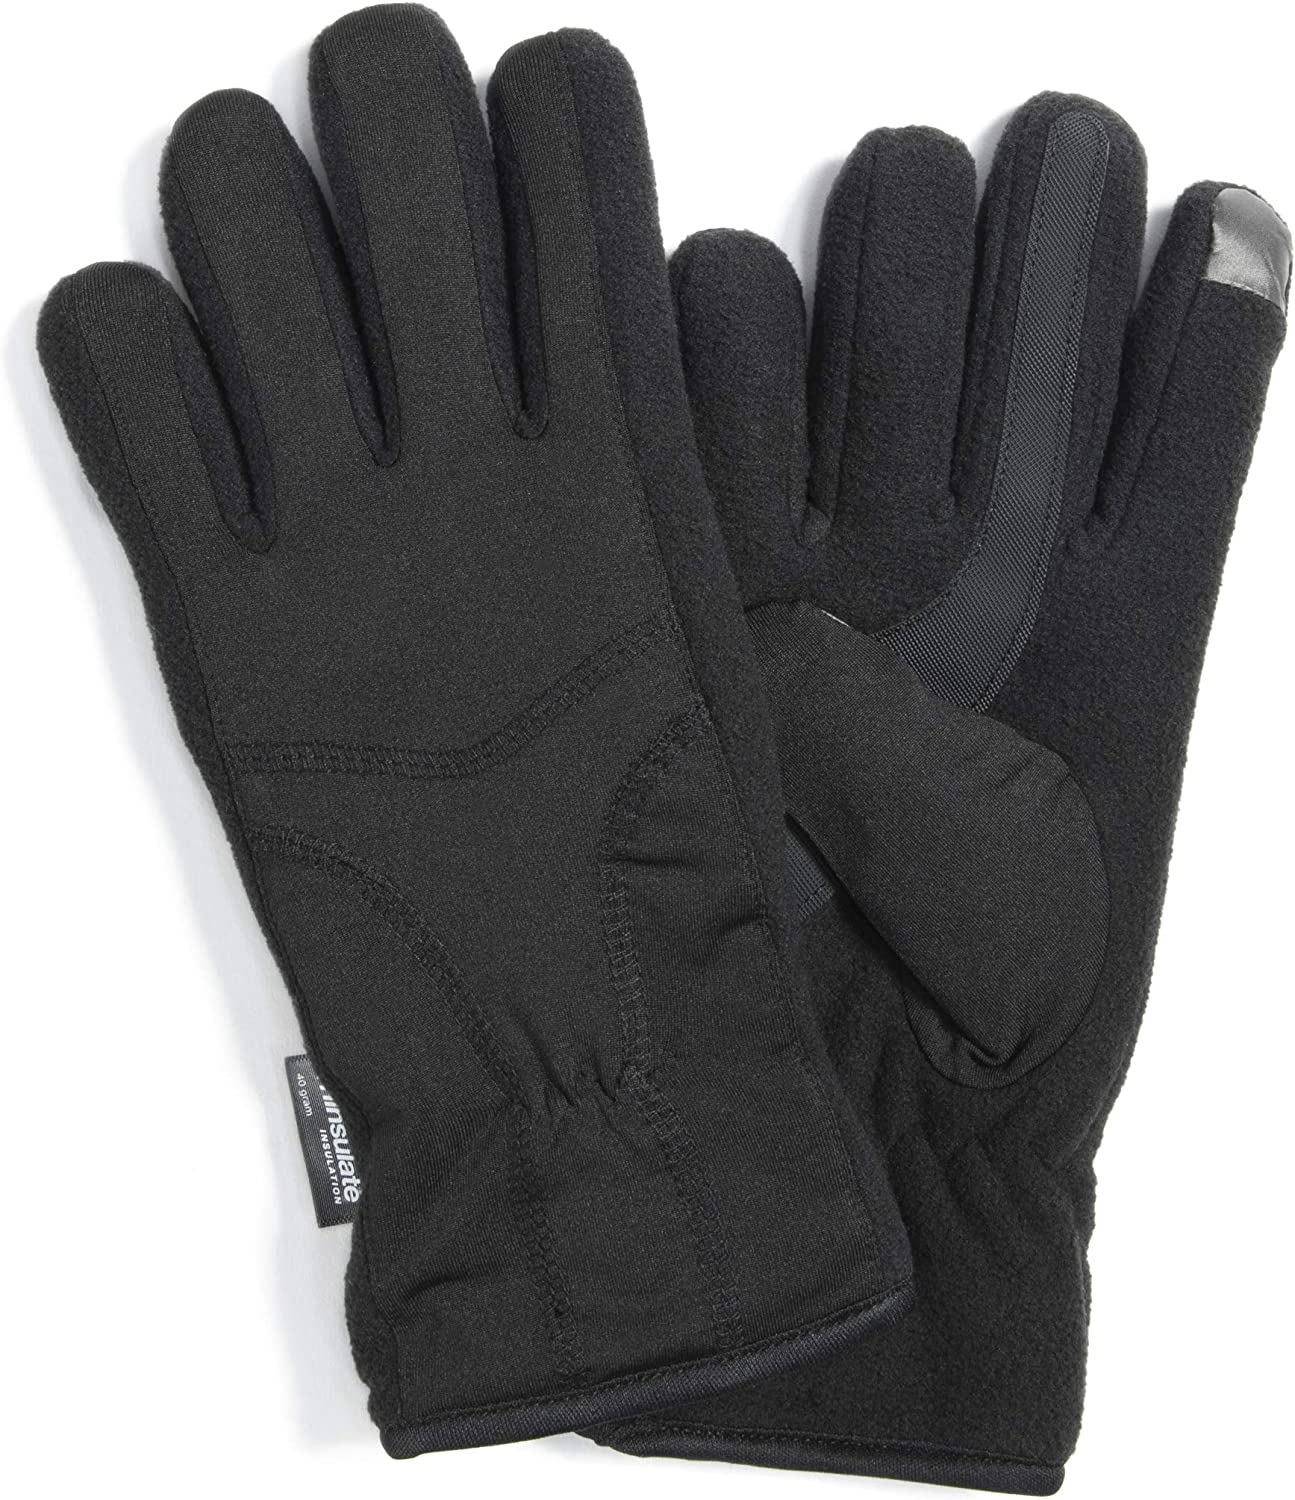 MUK LUKS Gloves Max 84% Max 80% OFF OFF womens